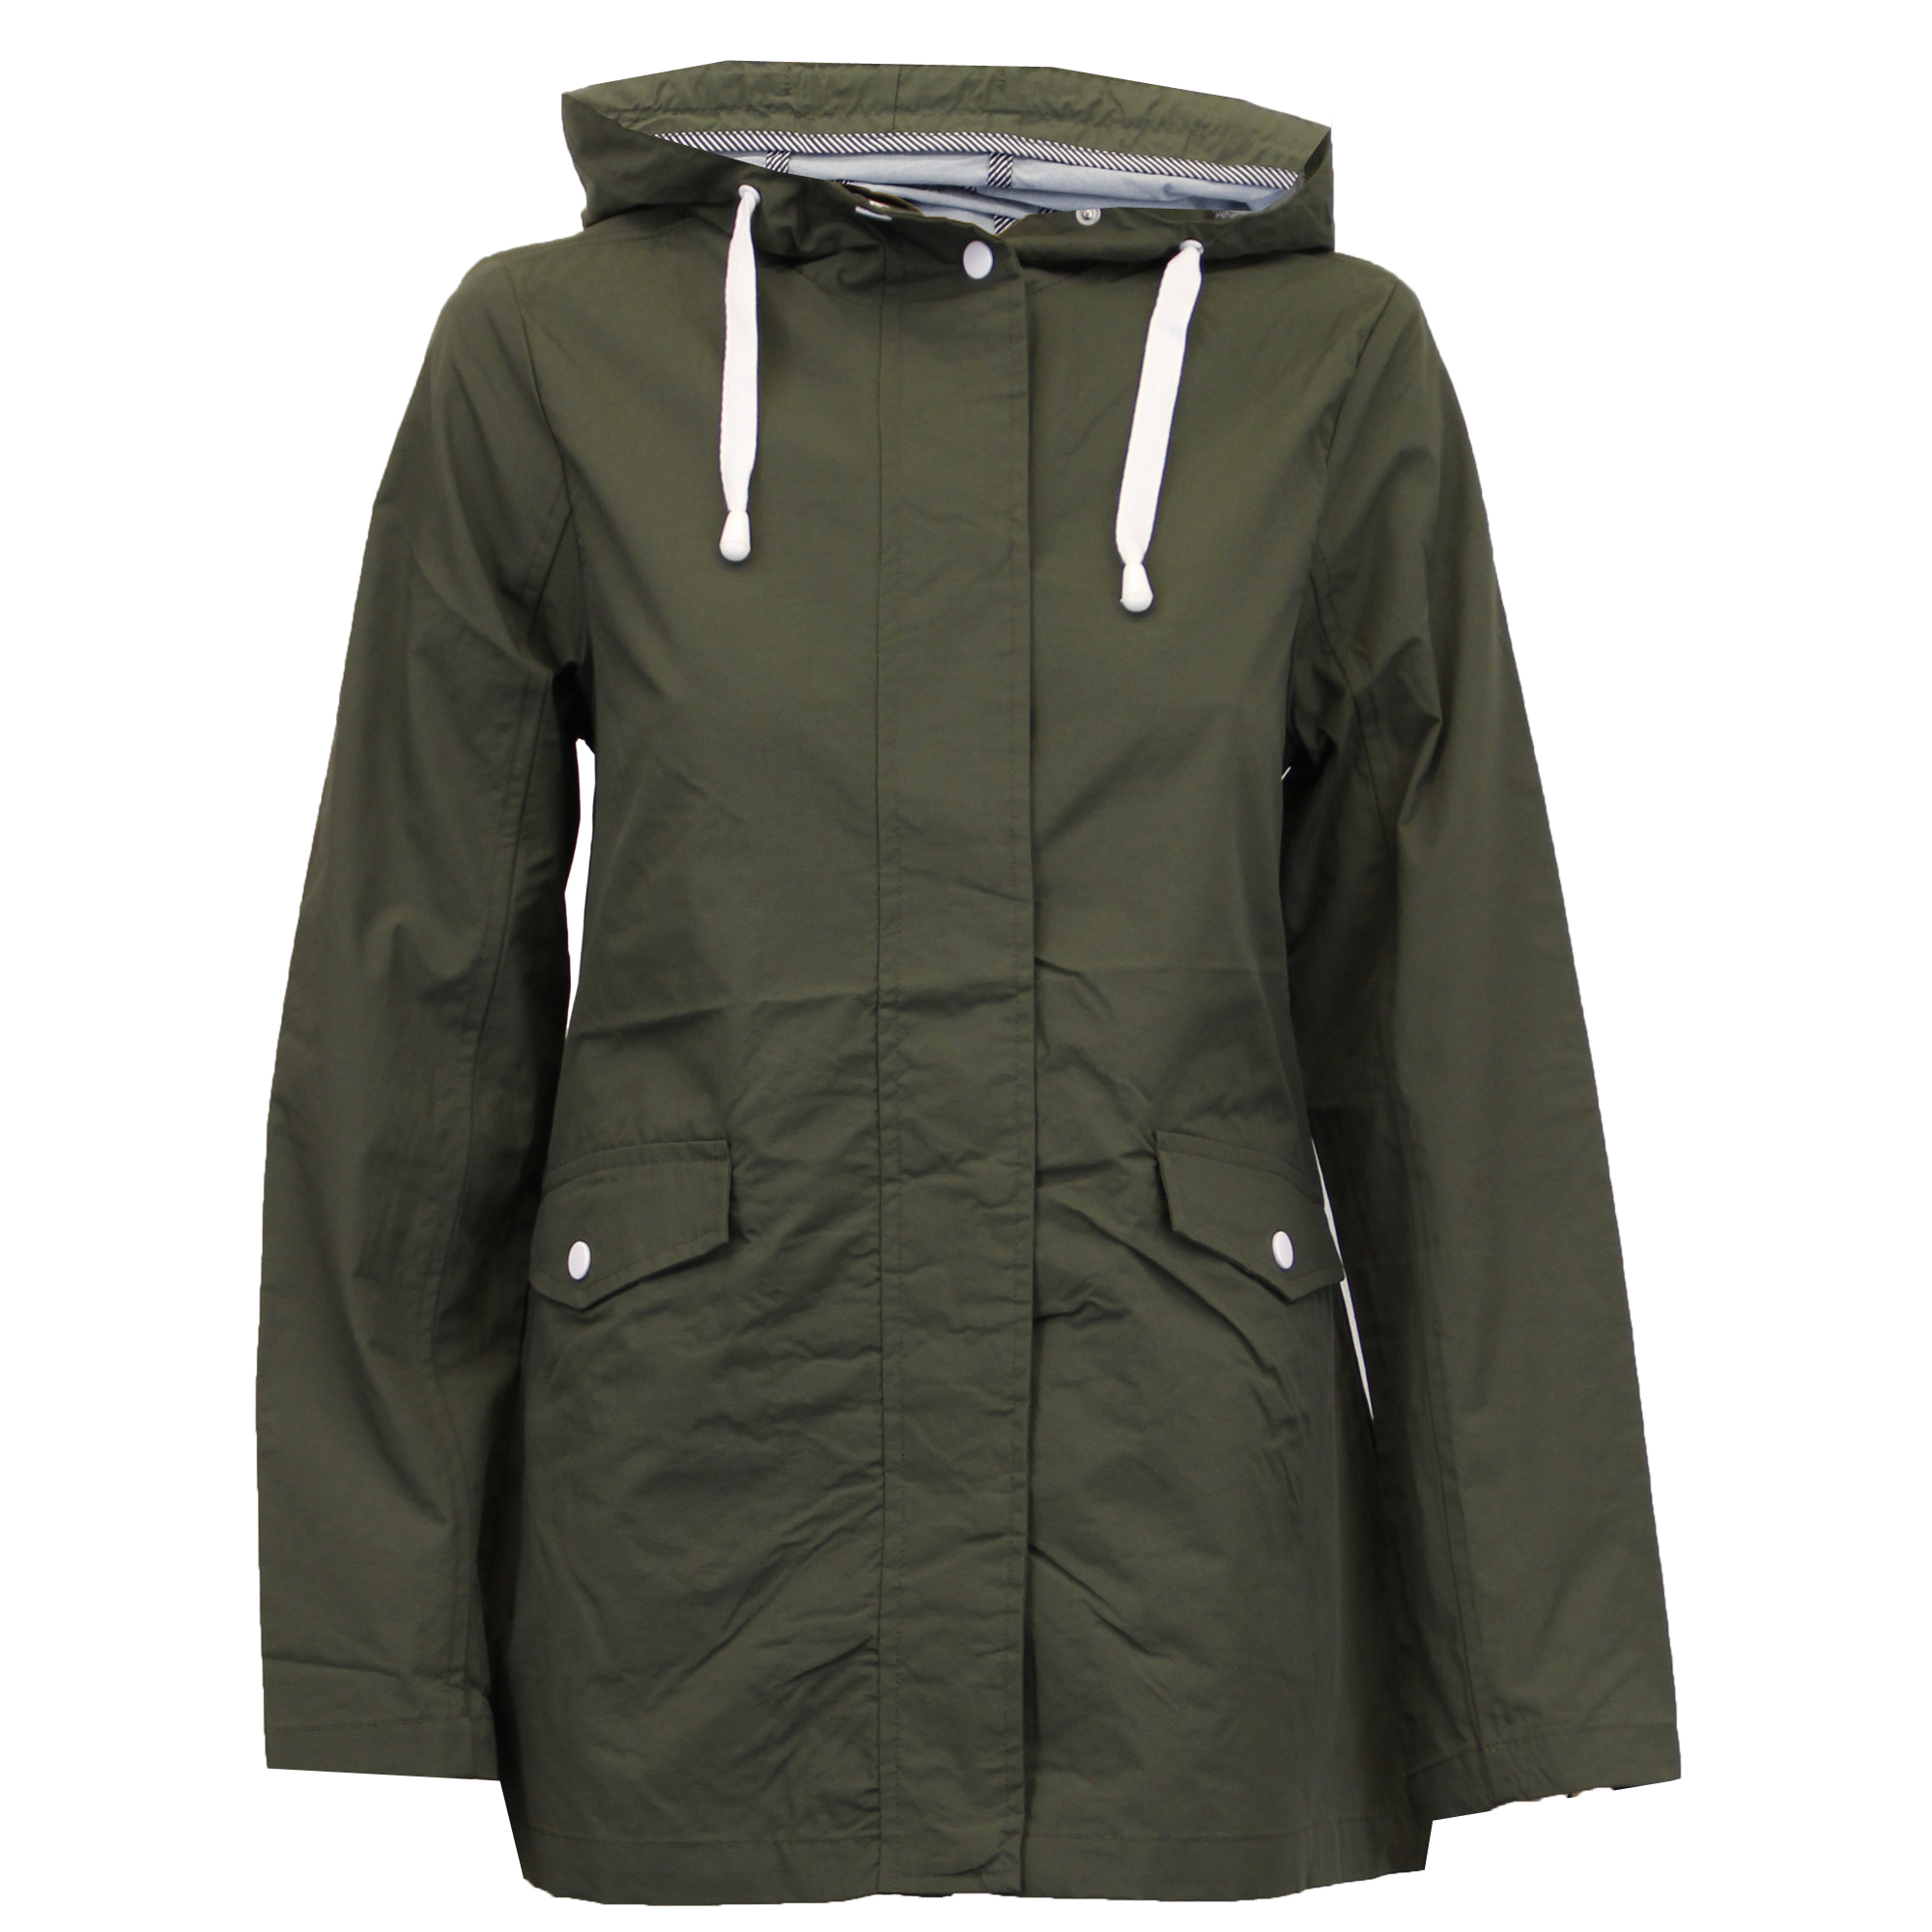 Womens lightweight coat